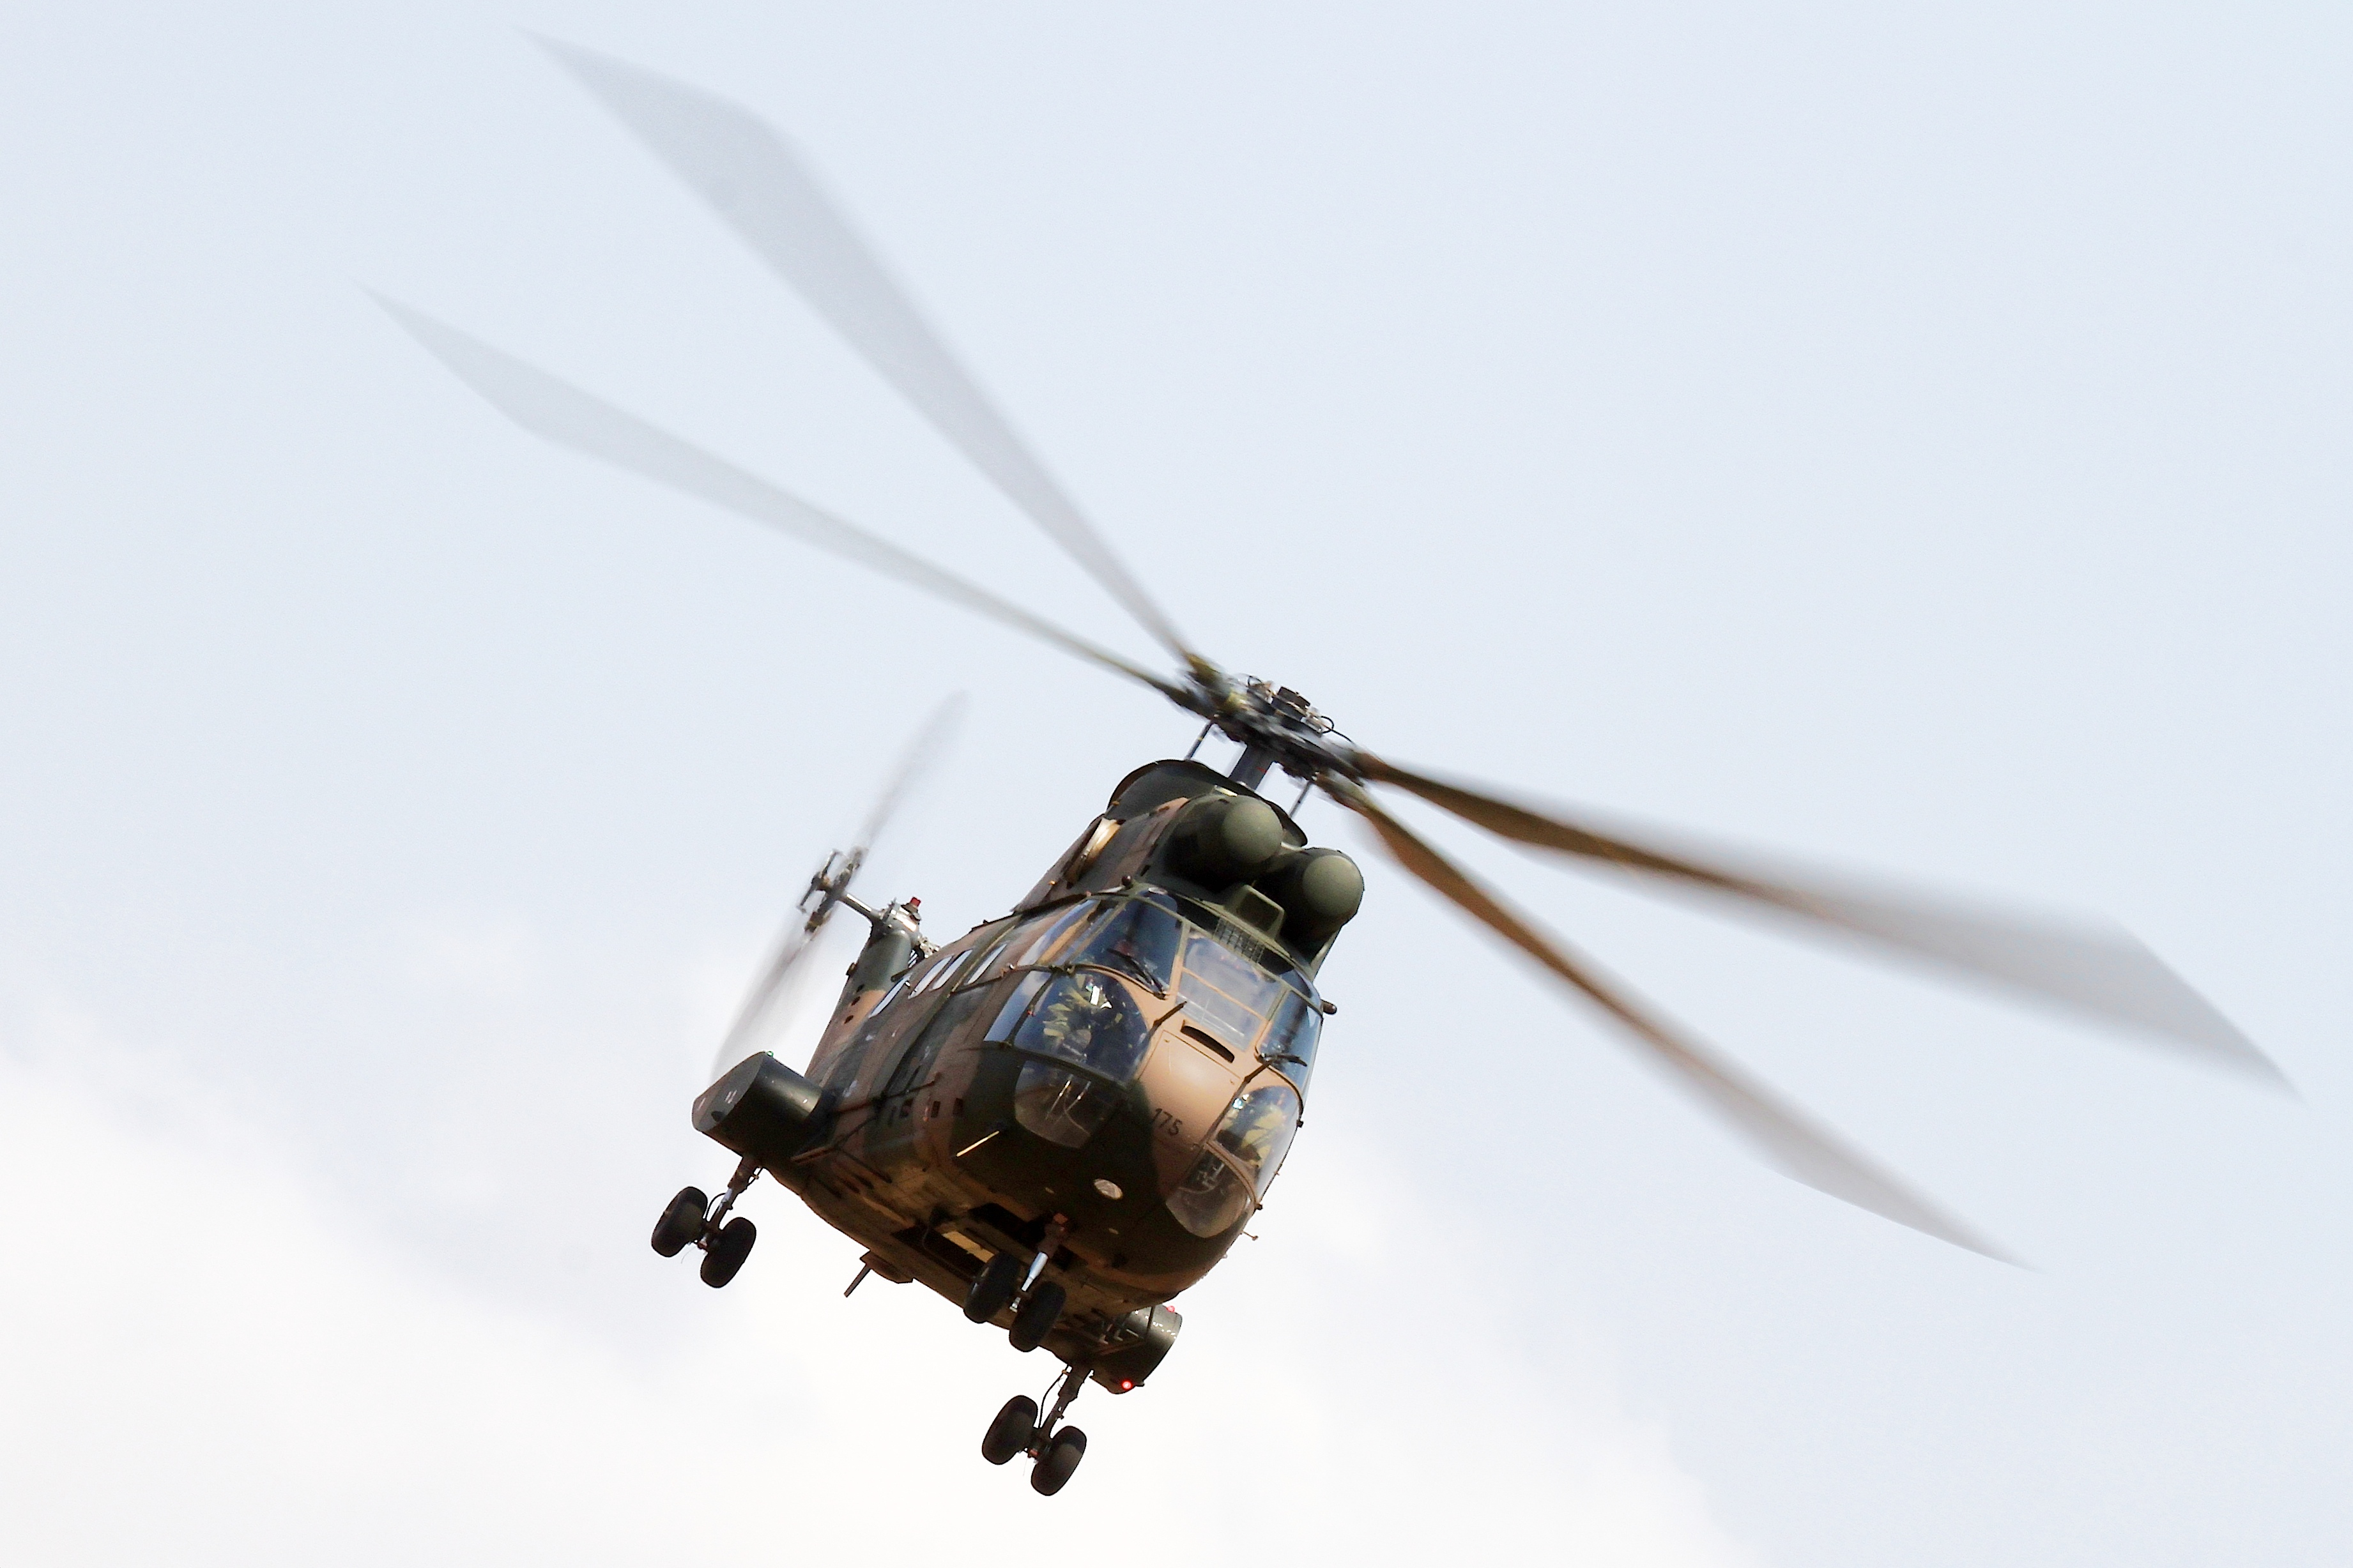 how work helicopter with File Saaf Puma 005 on File G UHIH   72 21509 129 Bell UH 1H Iroquois  205   cn 13208  US Army   9436432746 besides 478155685409346616 also File boscastle raf seaking in addition 8022105560125575 further Fantasy 575.